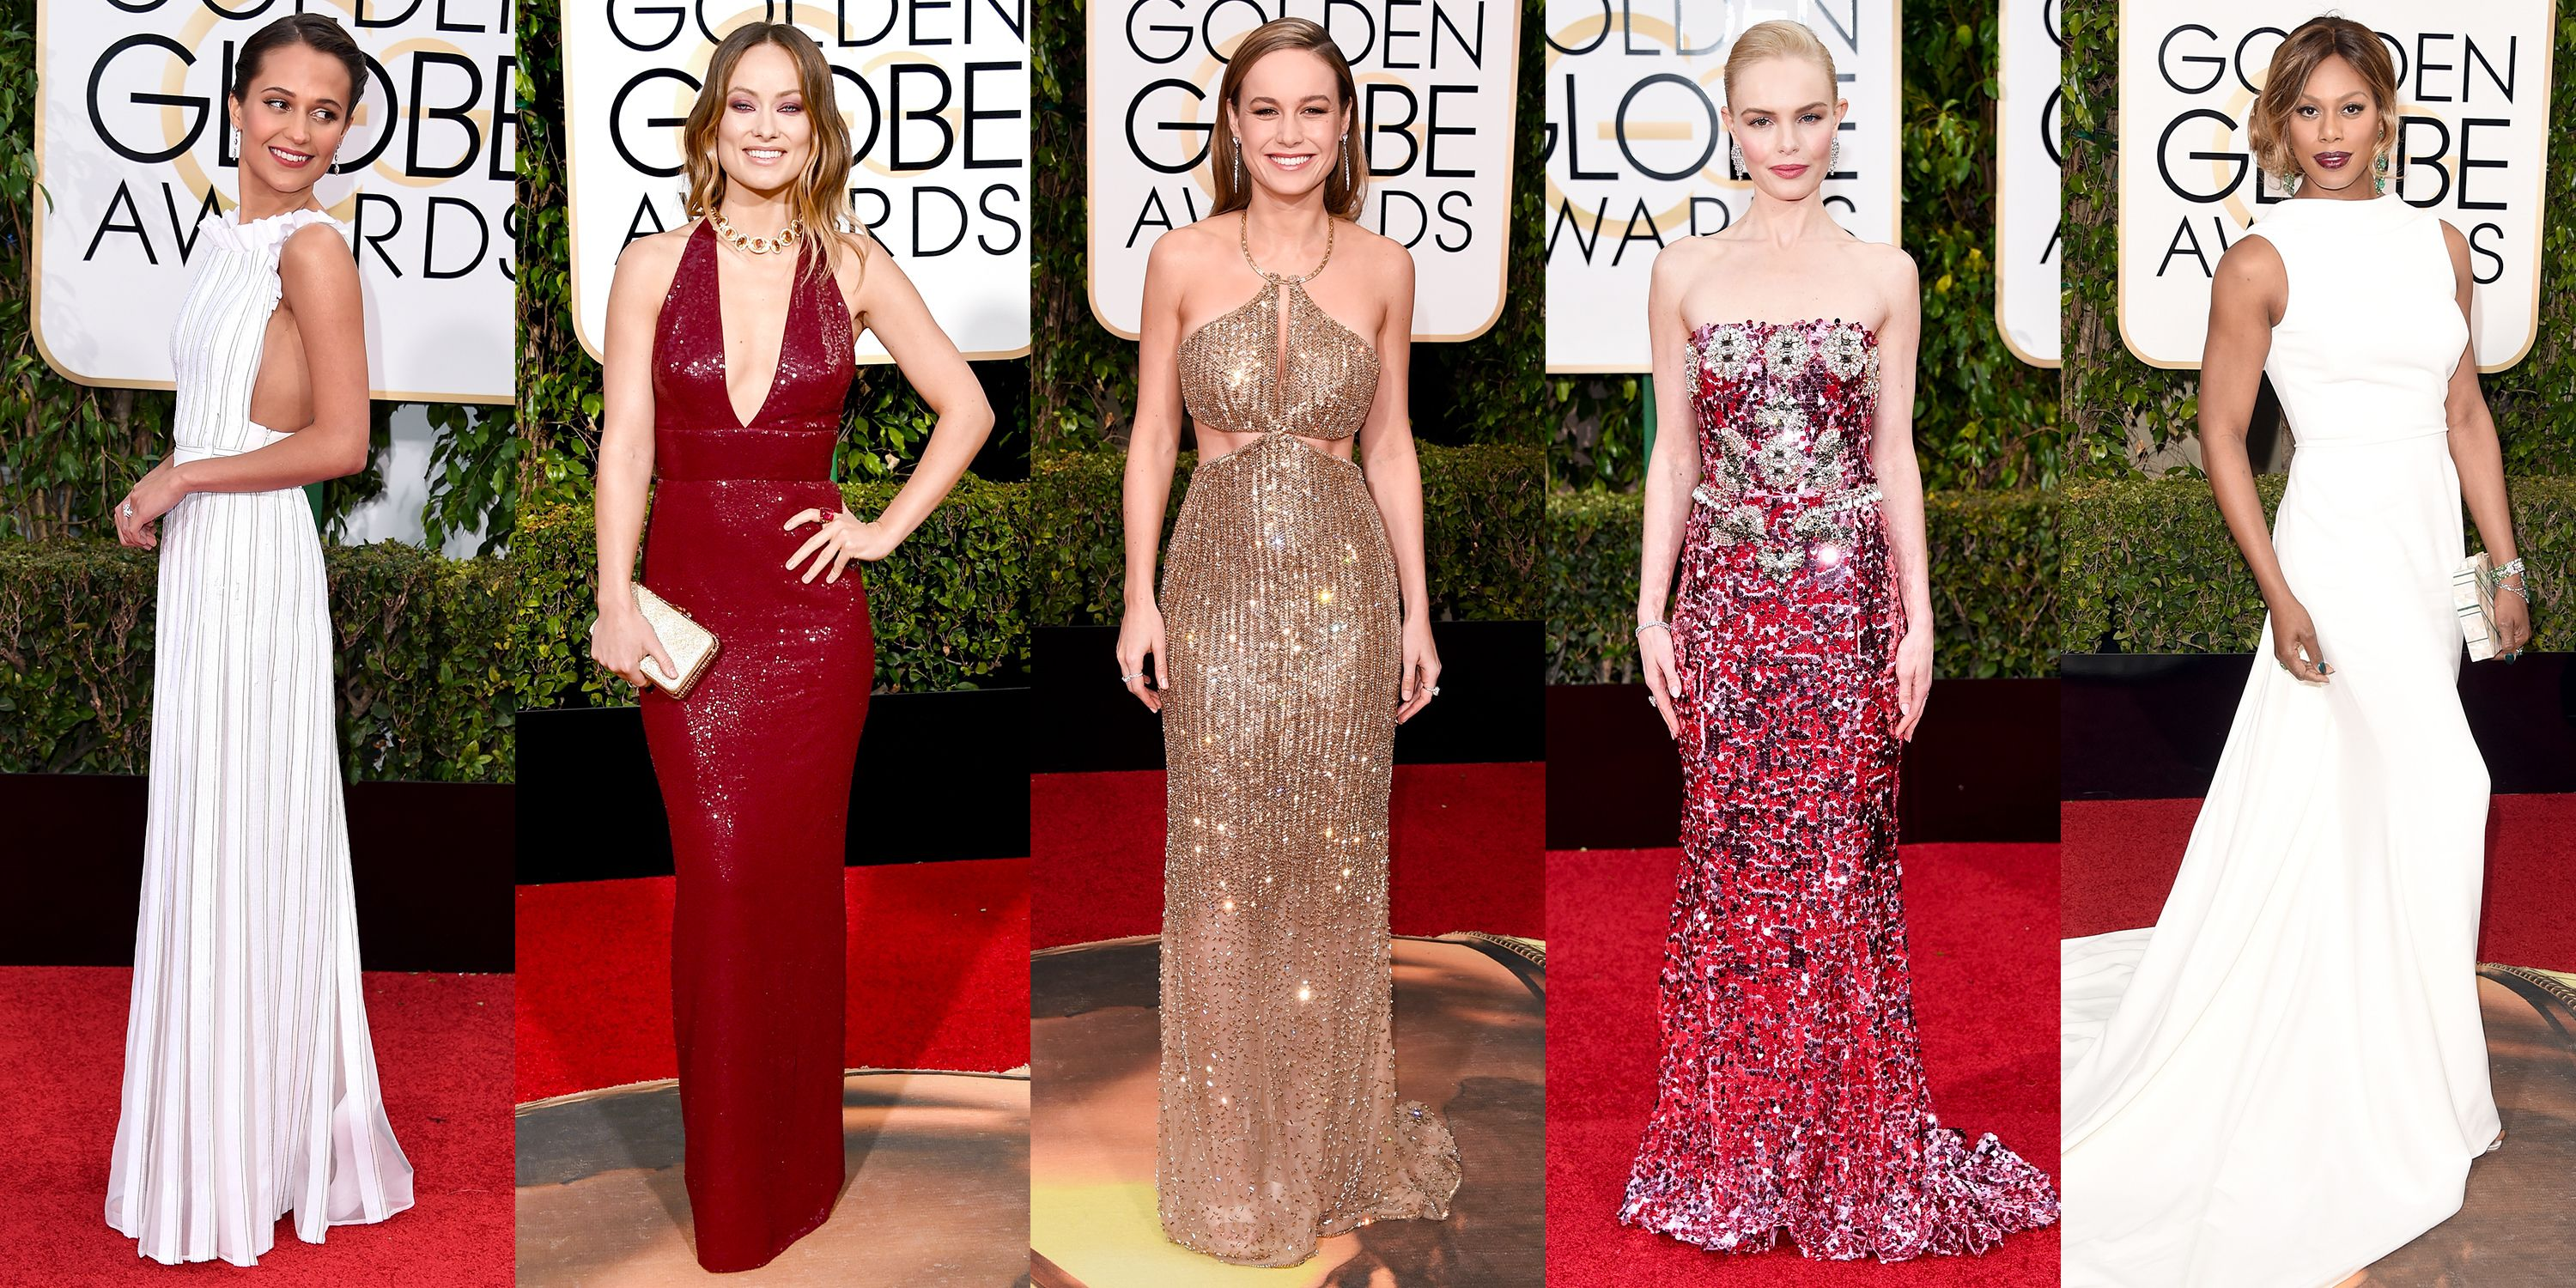 The Best Dresses from the 2016 Golden Globes - Best Dressed Globes